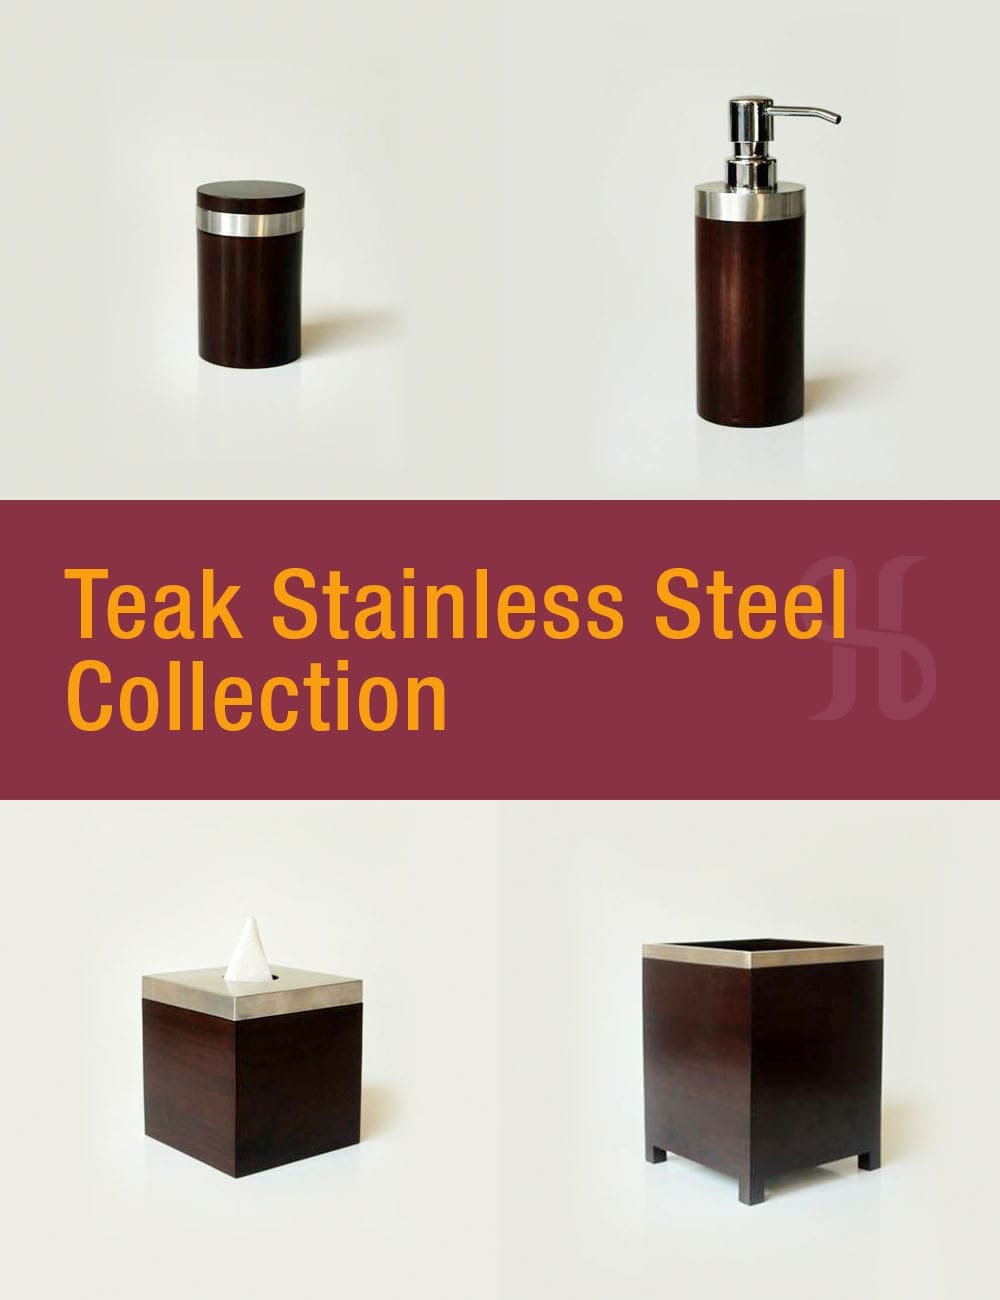 Teak Stainless Steel Collection